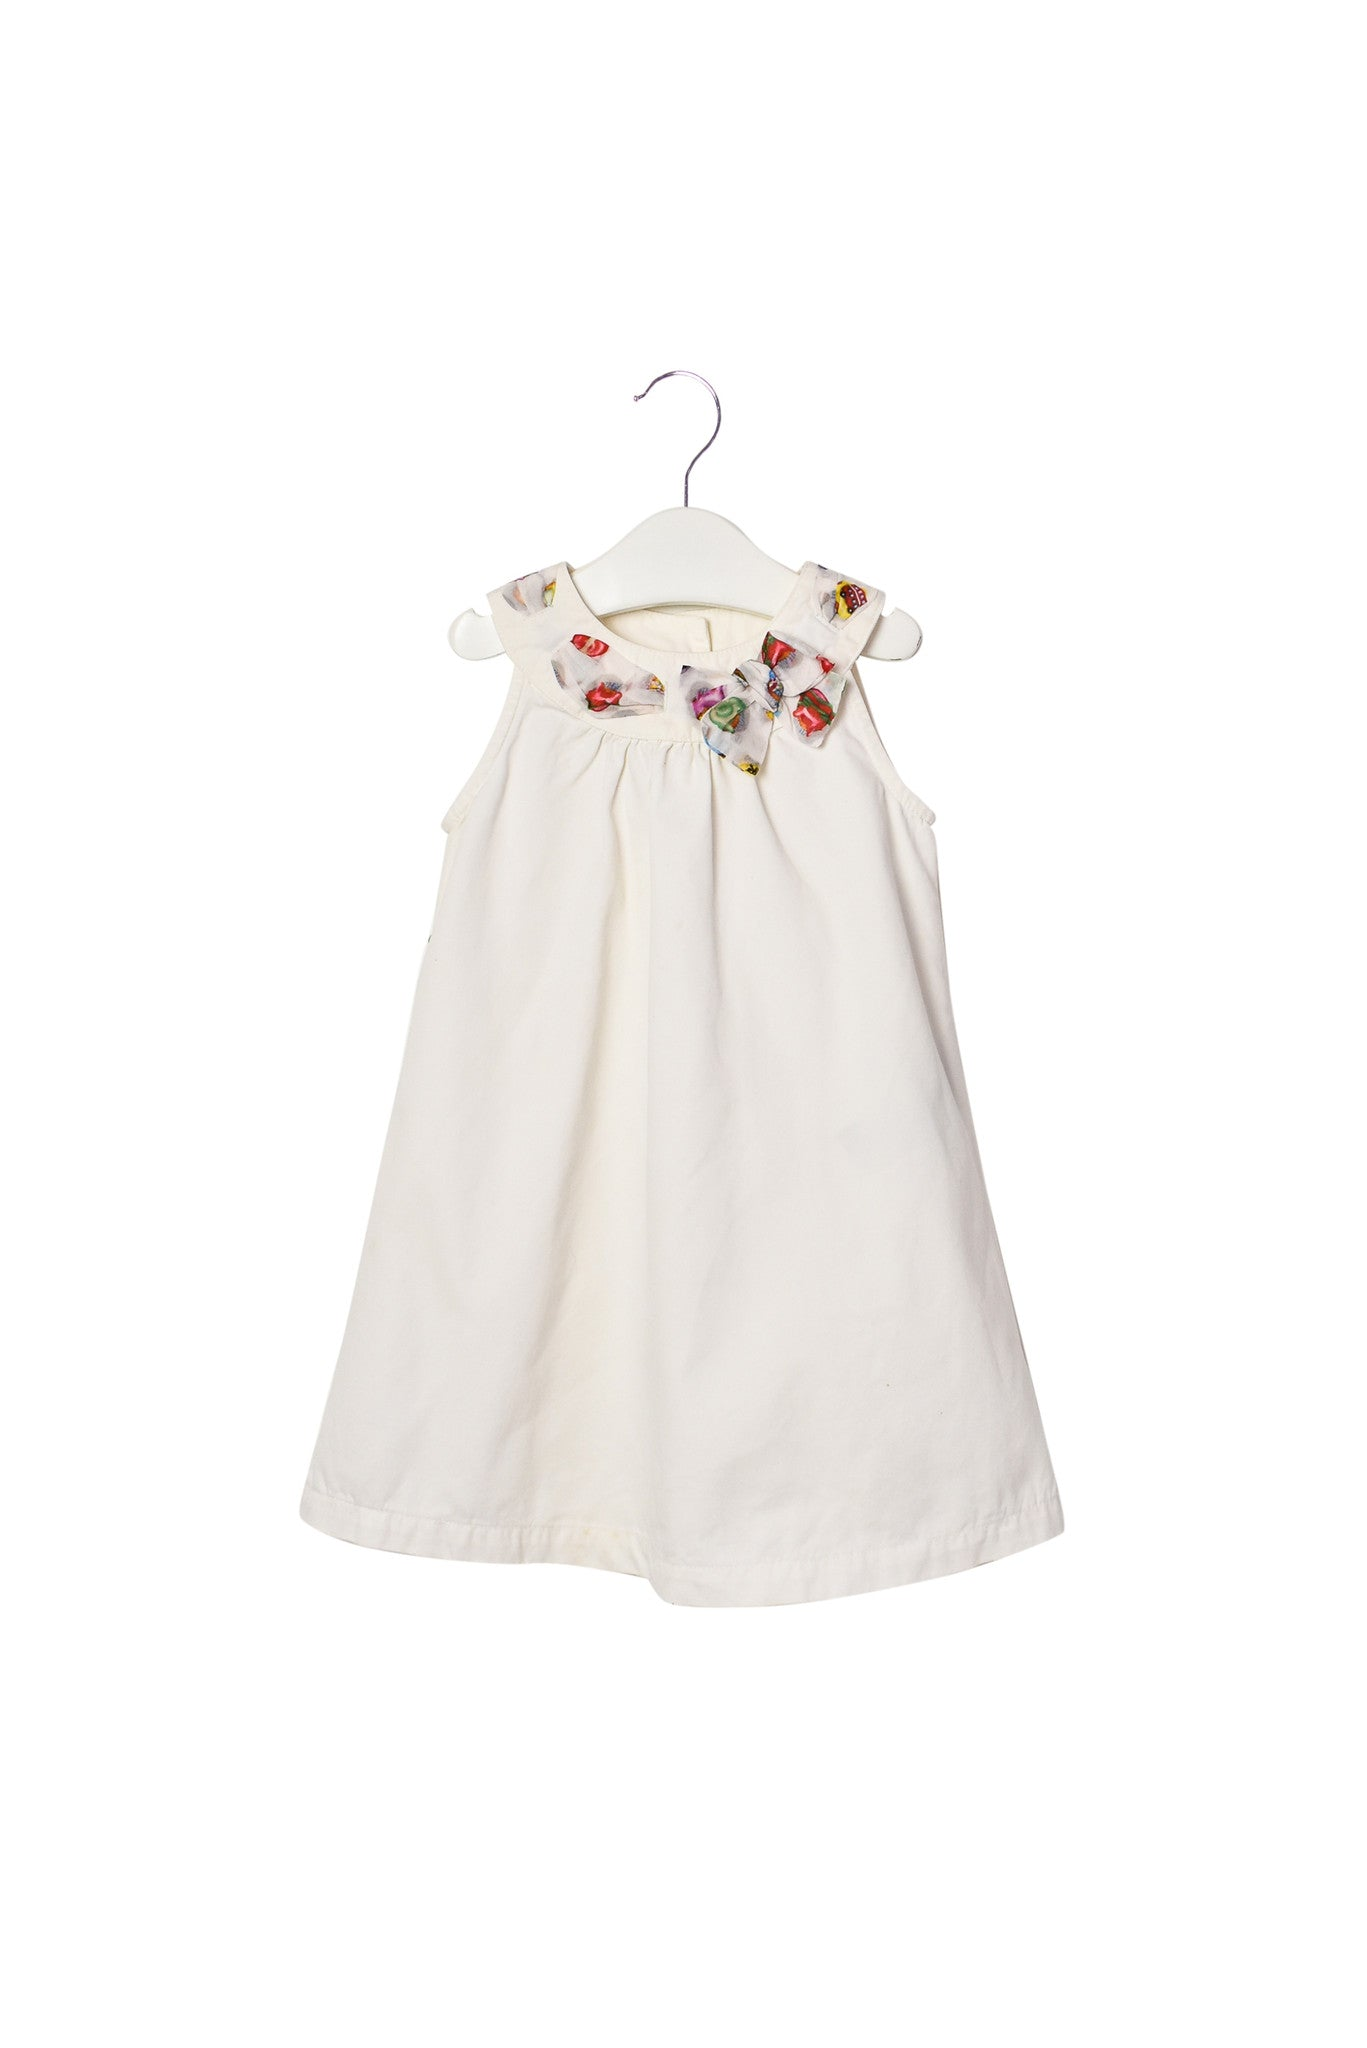 5dfb96ad0 10003526 Gucci Baby~Dress 18-24M at Retykle